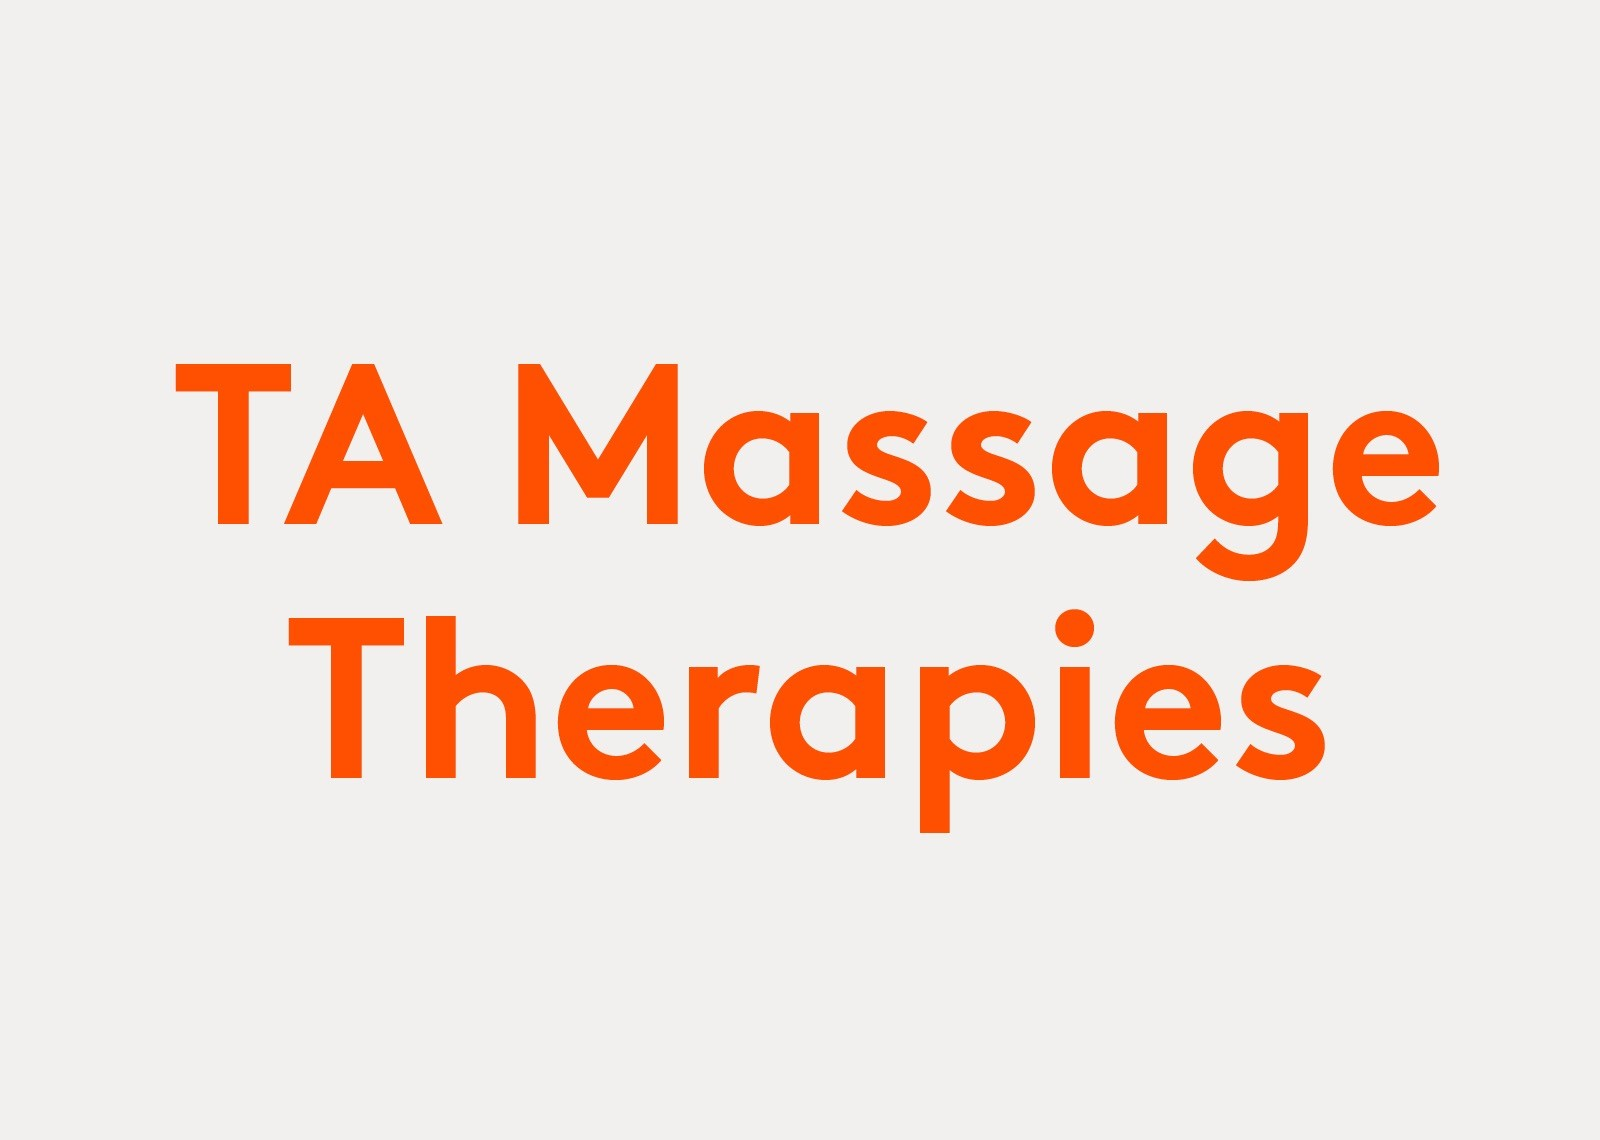 TA Massage Therapies